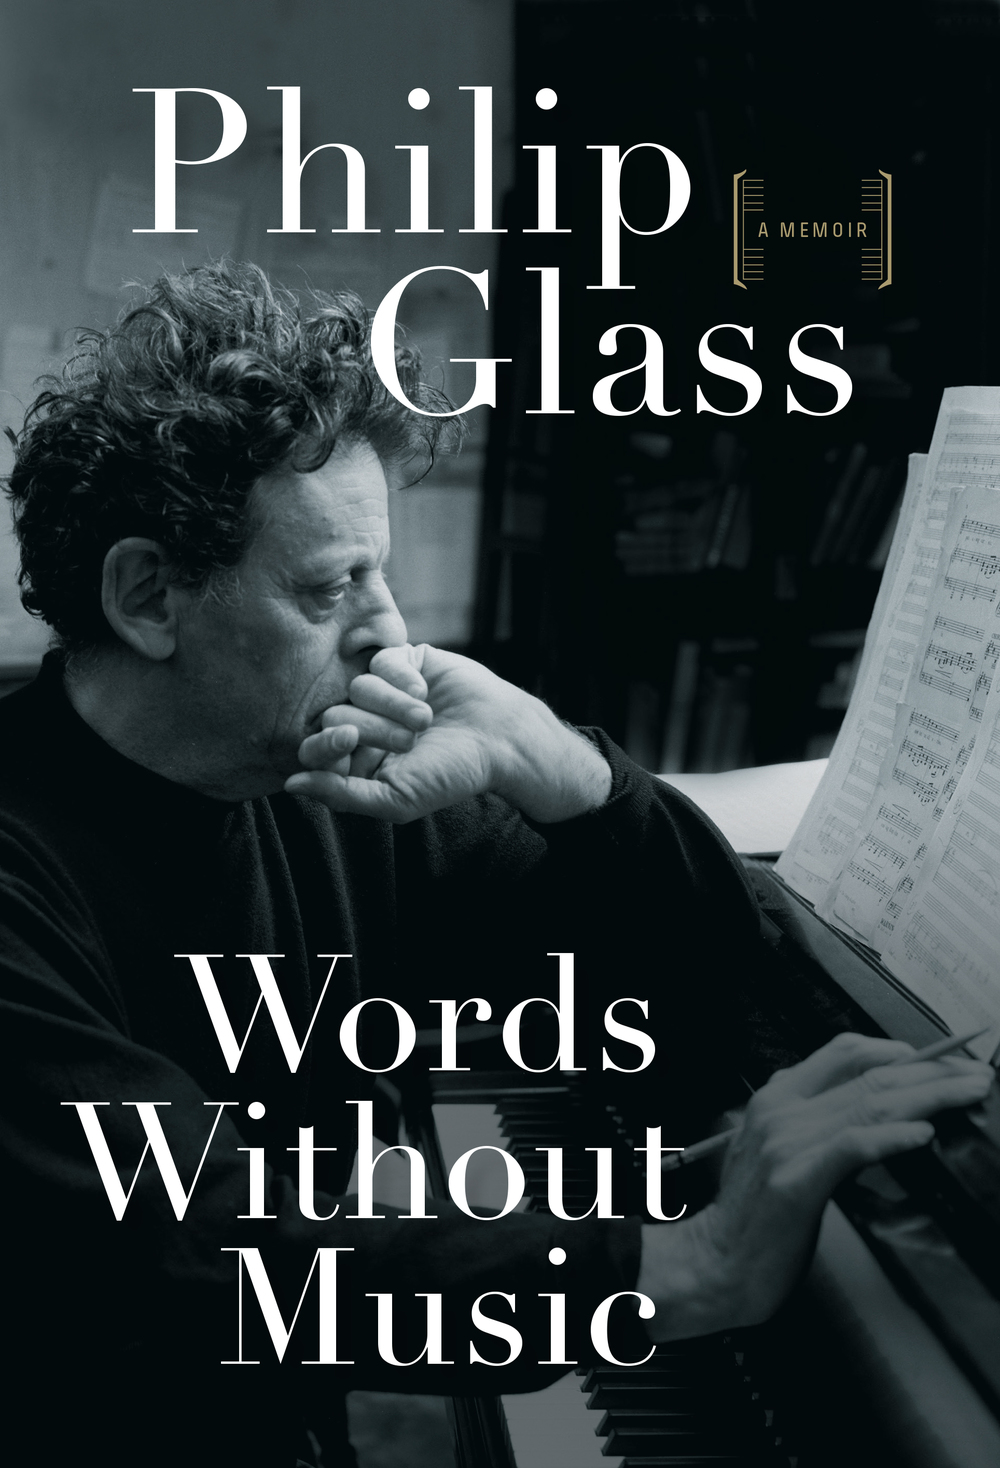 Words Without Music: A Memoir  by  Philip Glass  (Liveright Publishing/Faber & Faber, April 2015)  Reviewed by  Alexandra Hamilton-Ayres